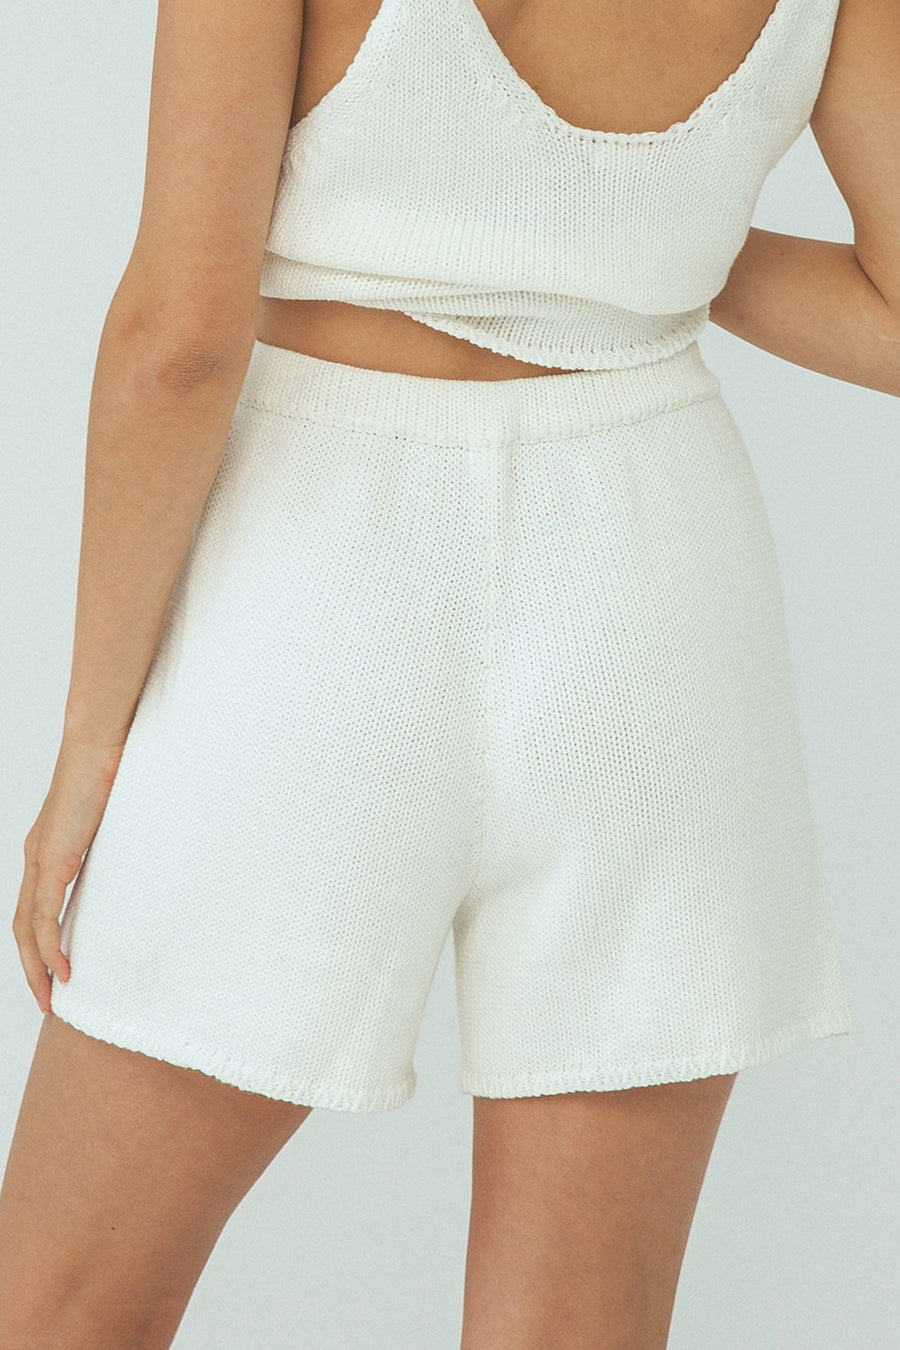 DELTA KNIT SHORT WHITE